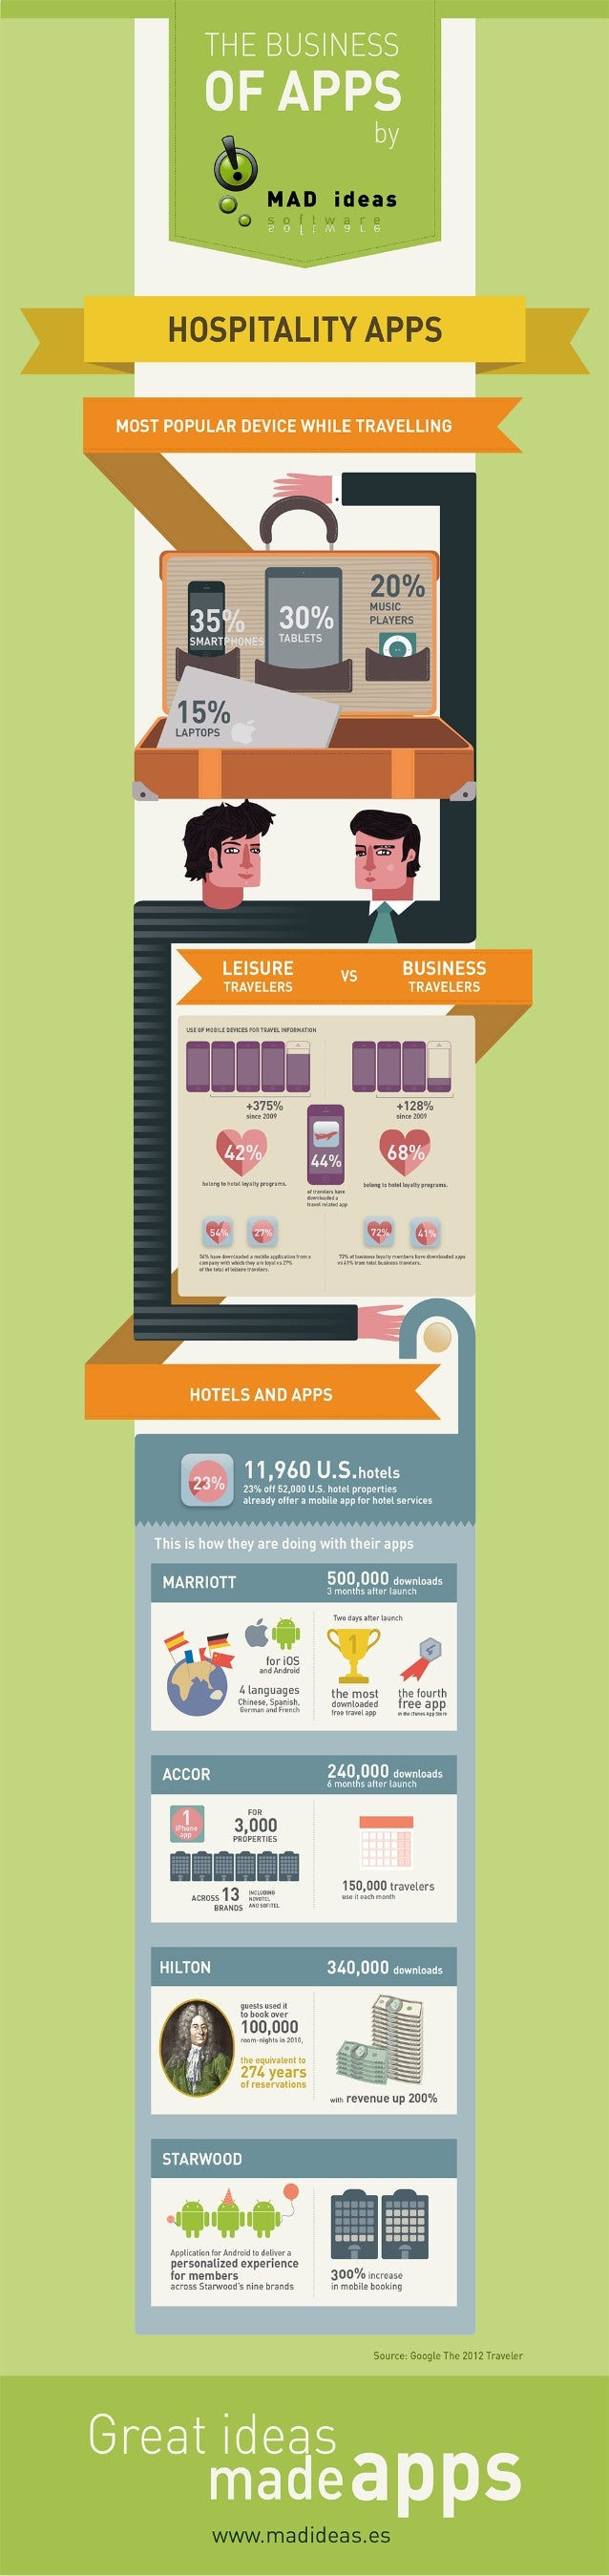 The Business of Apps: Hospitality Apps